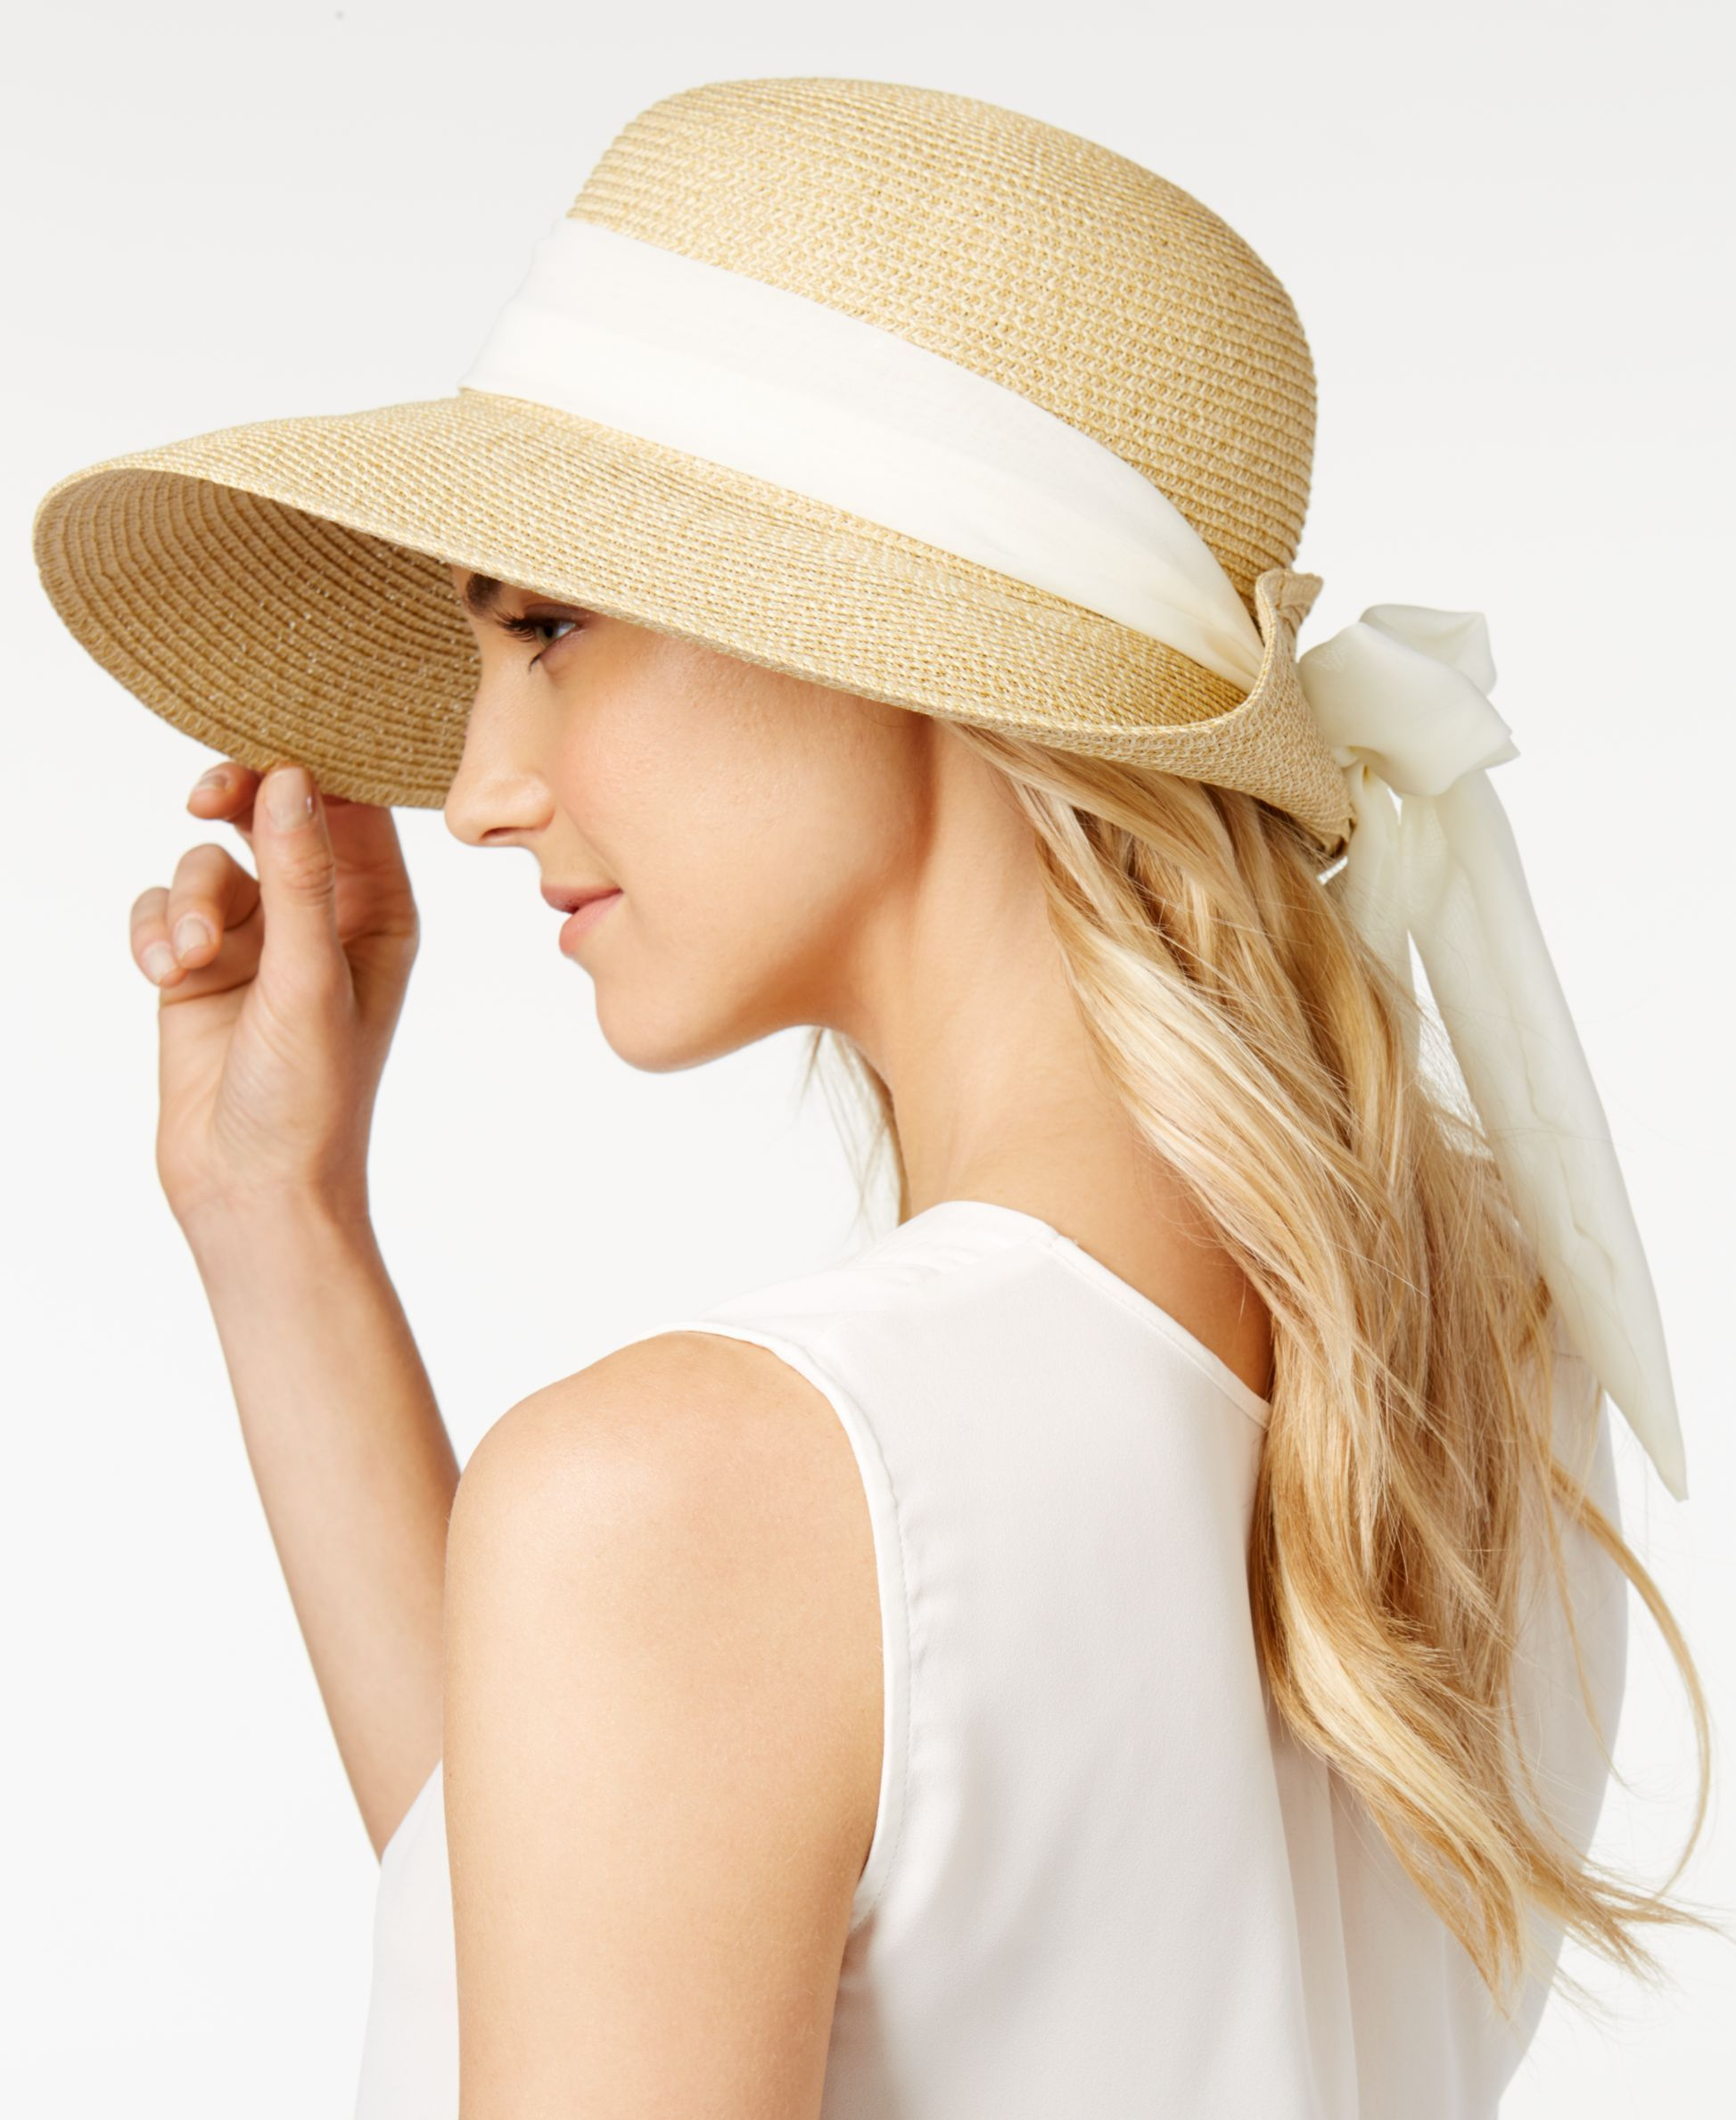 beaa06ce28d Say hello to a full season of chic looks with Nine West s packable sun hat